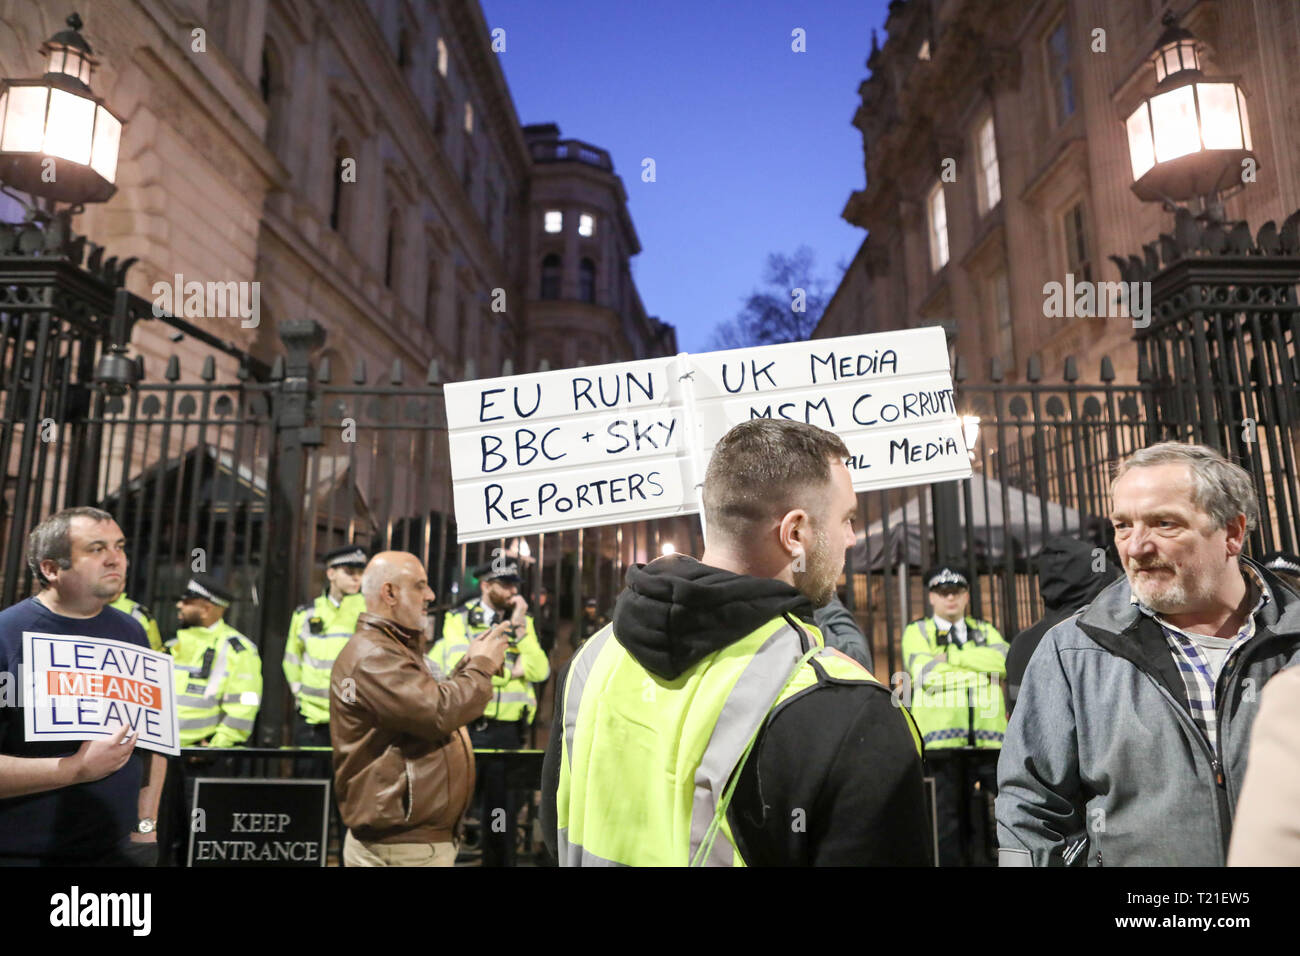 London, UK. 29th March, 2019. Scuffles and a standoff between police and Brexit demonstrators outside downing Street. Credit: Penelope Barritt/Alamy Live News Stock Photo